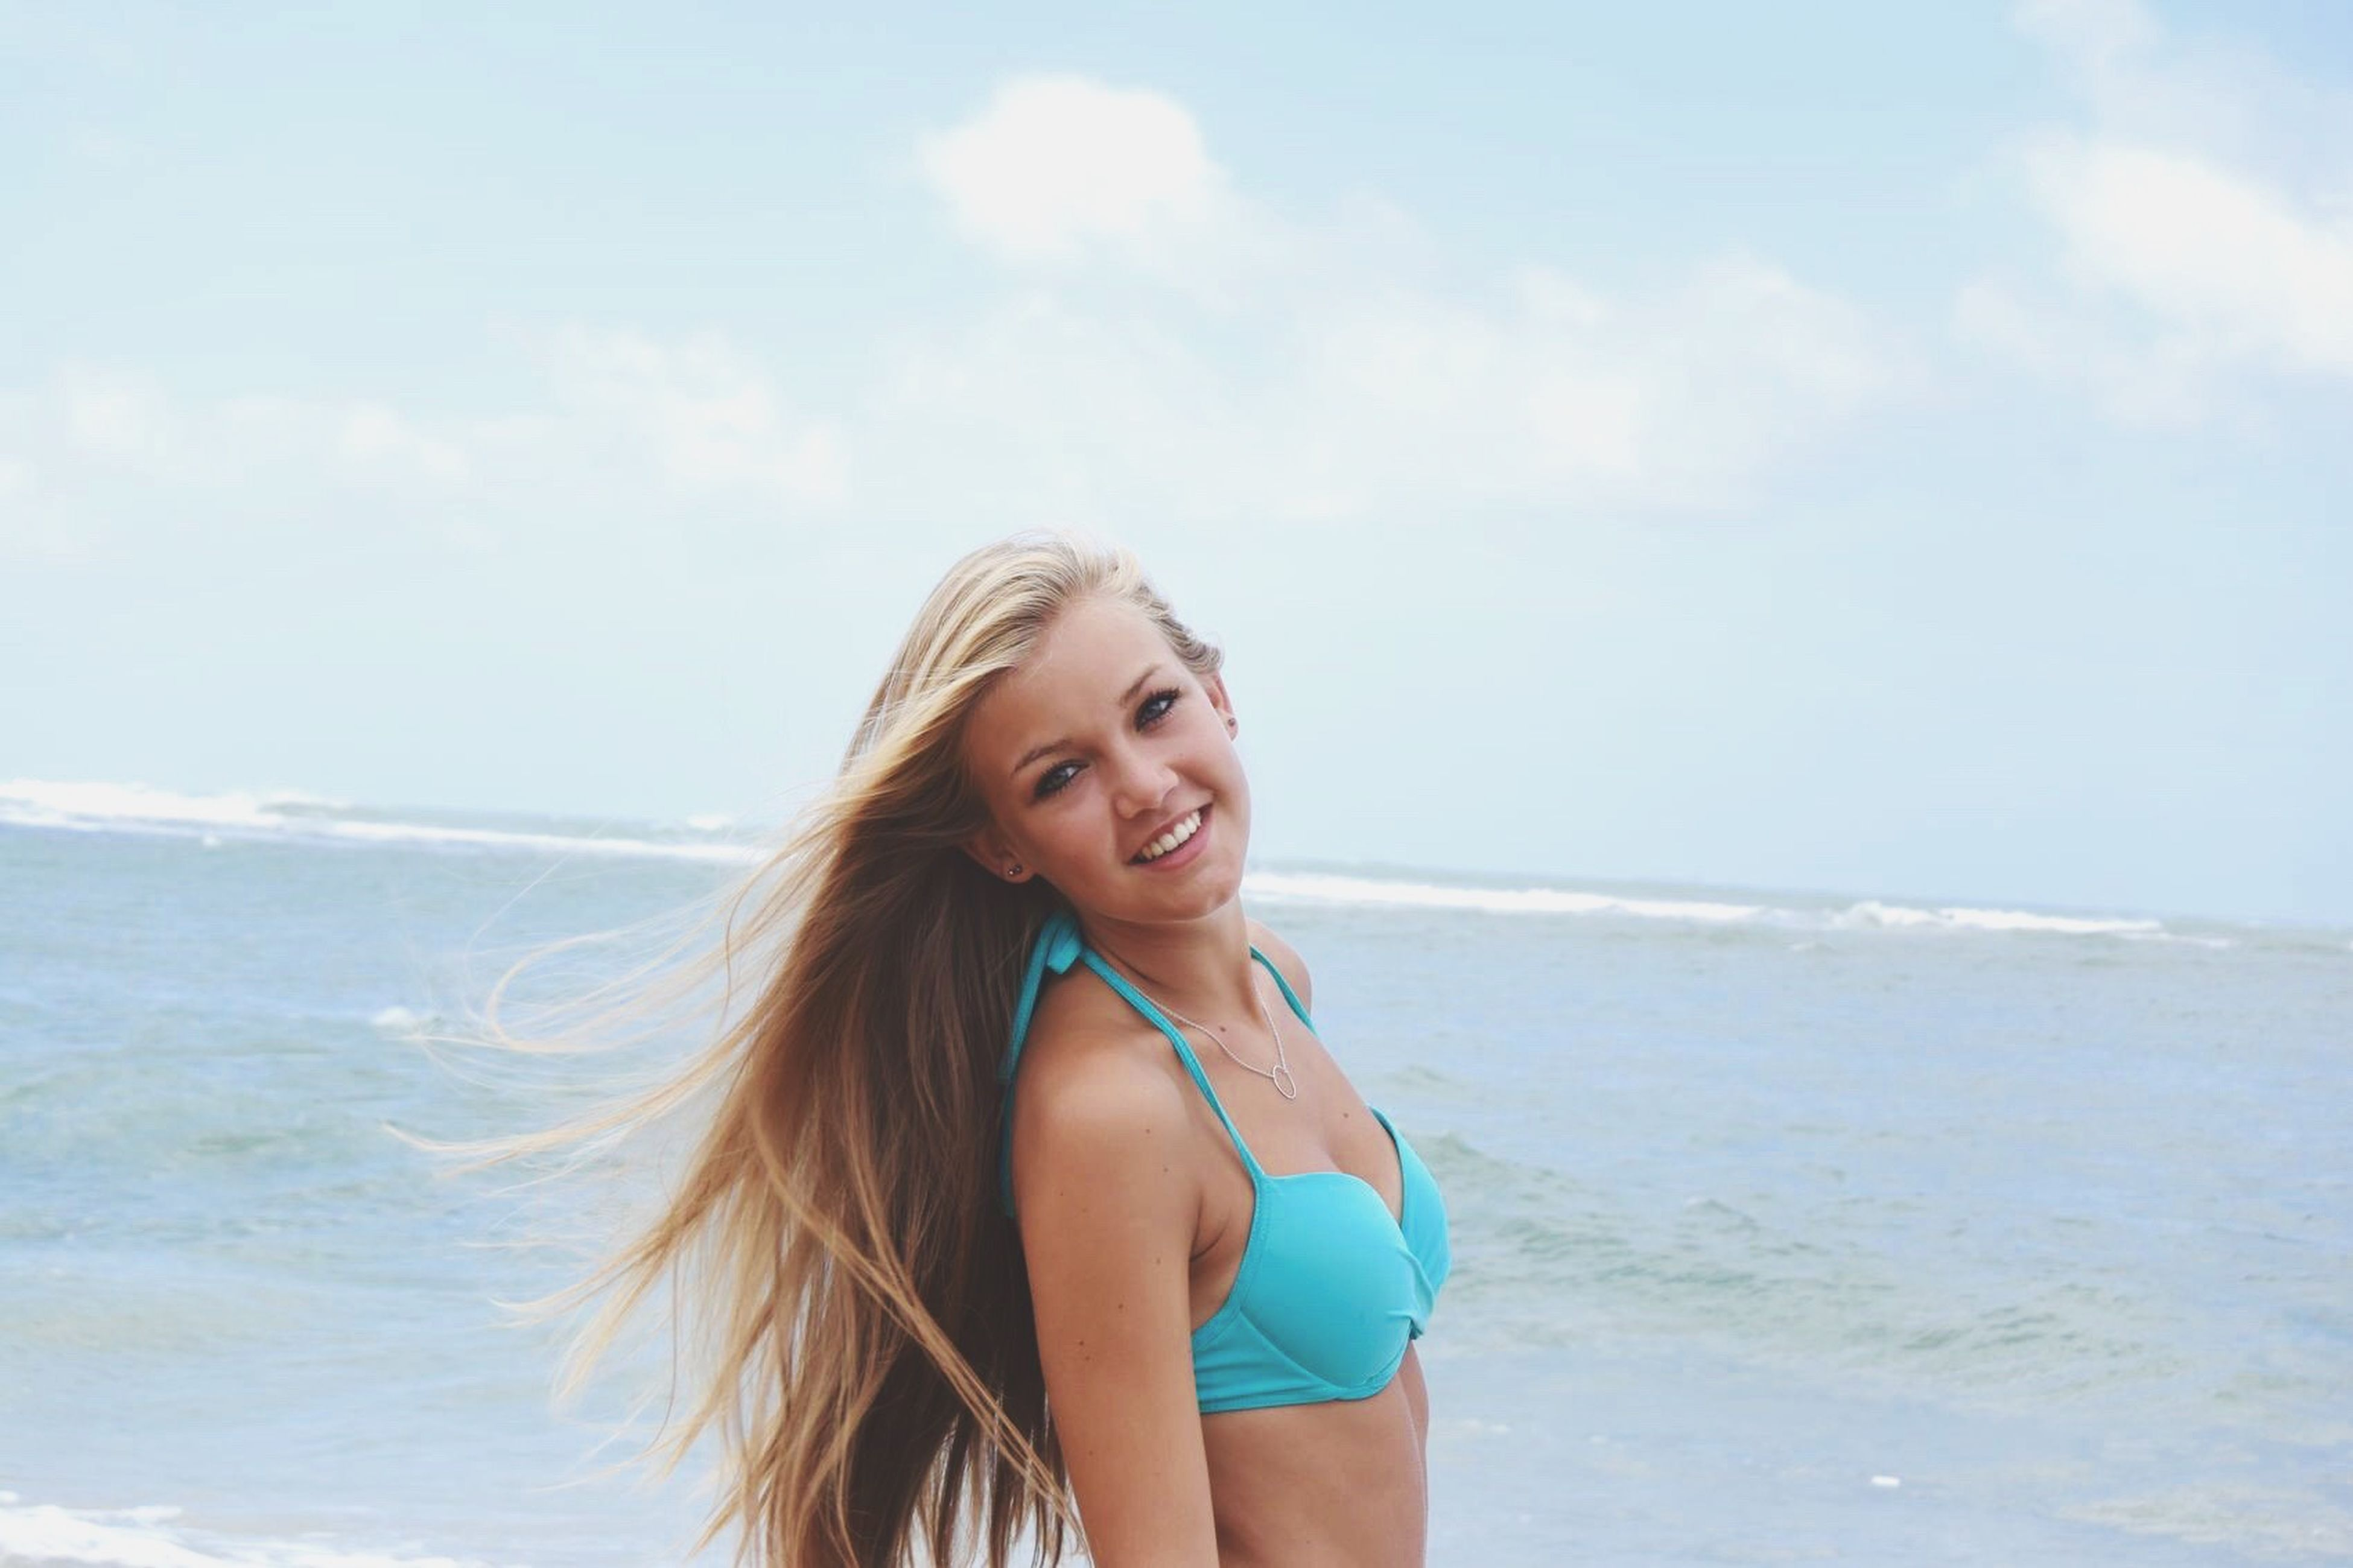 sea, young adult, person, beach, young women, water, portrait, looking at camera, lifestyles, leisure activity, smiling, long hair, happiness, sky, vacations, front view, sunglasses